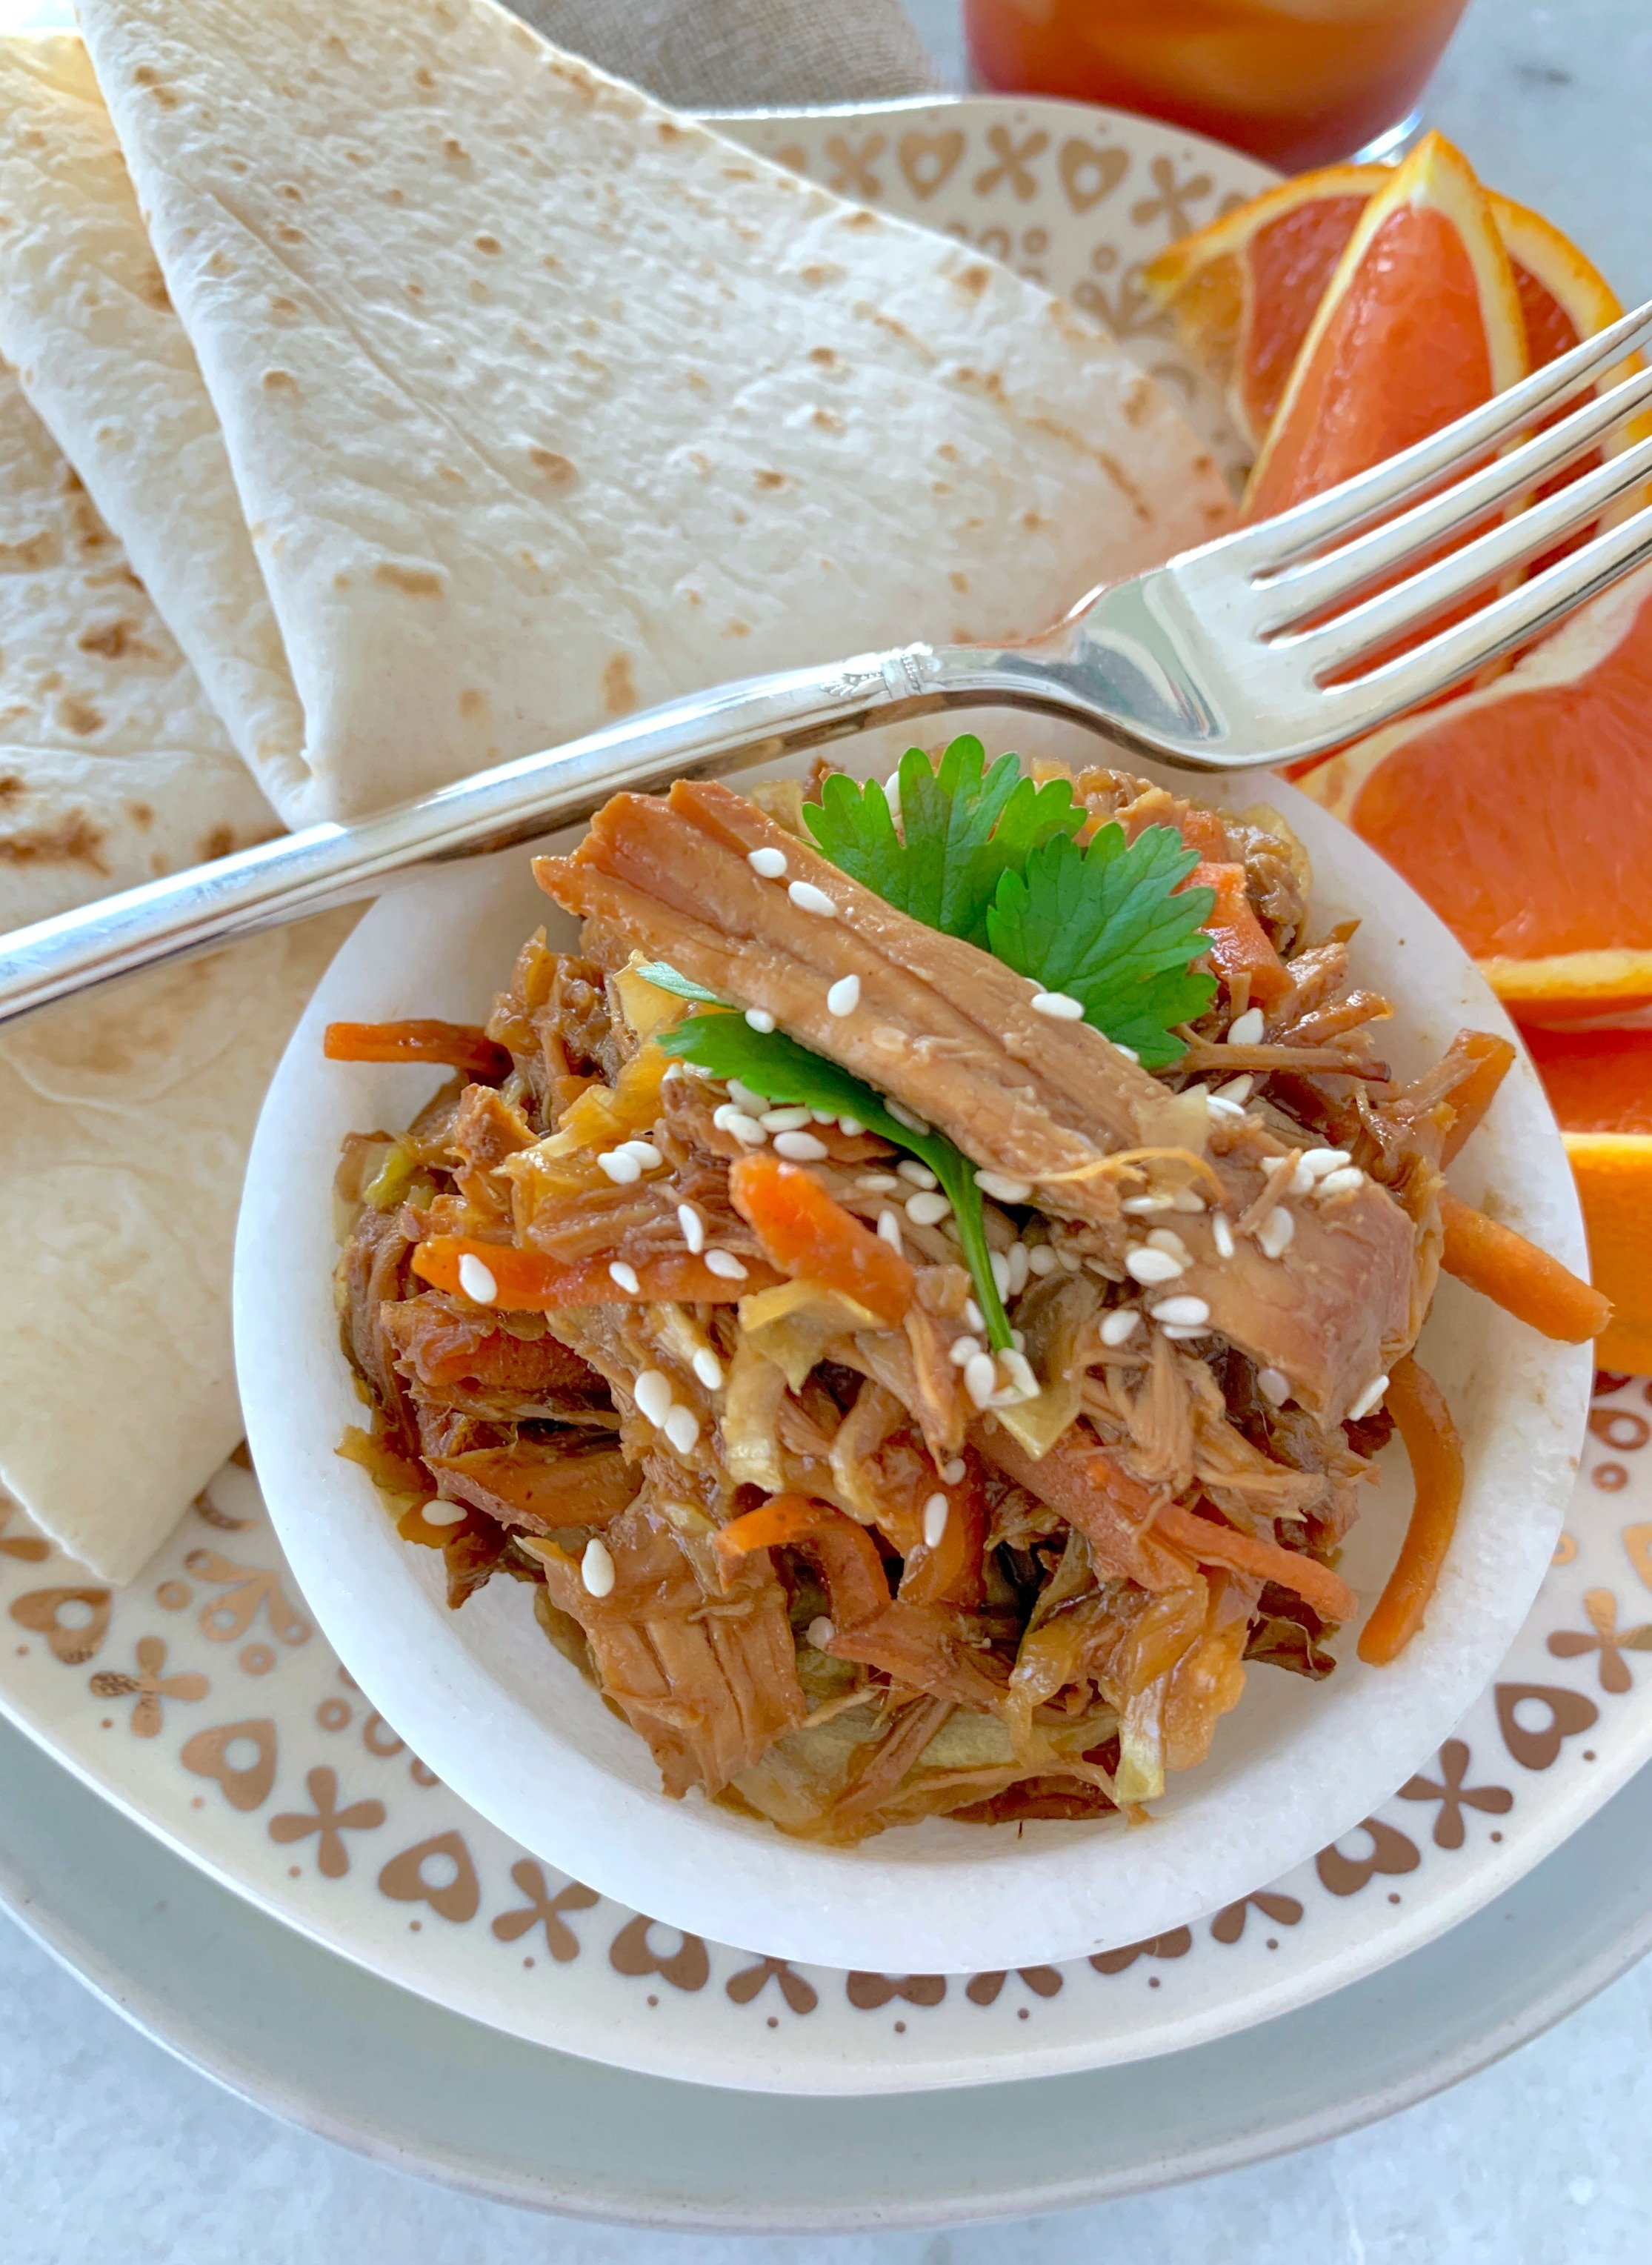 slow cooker moo shu pork on plate with tortillas and orange slices